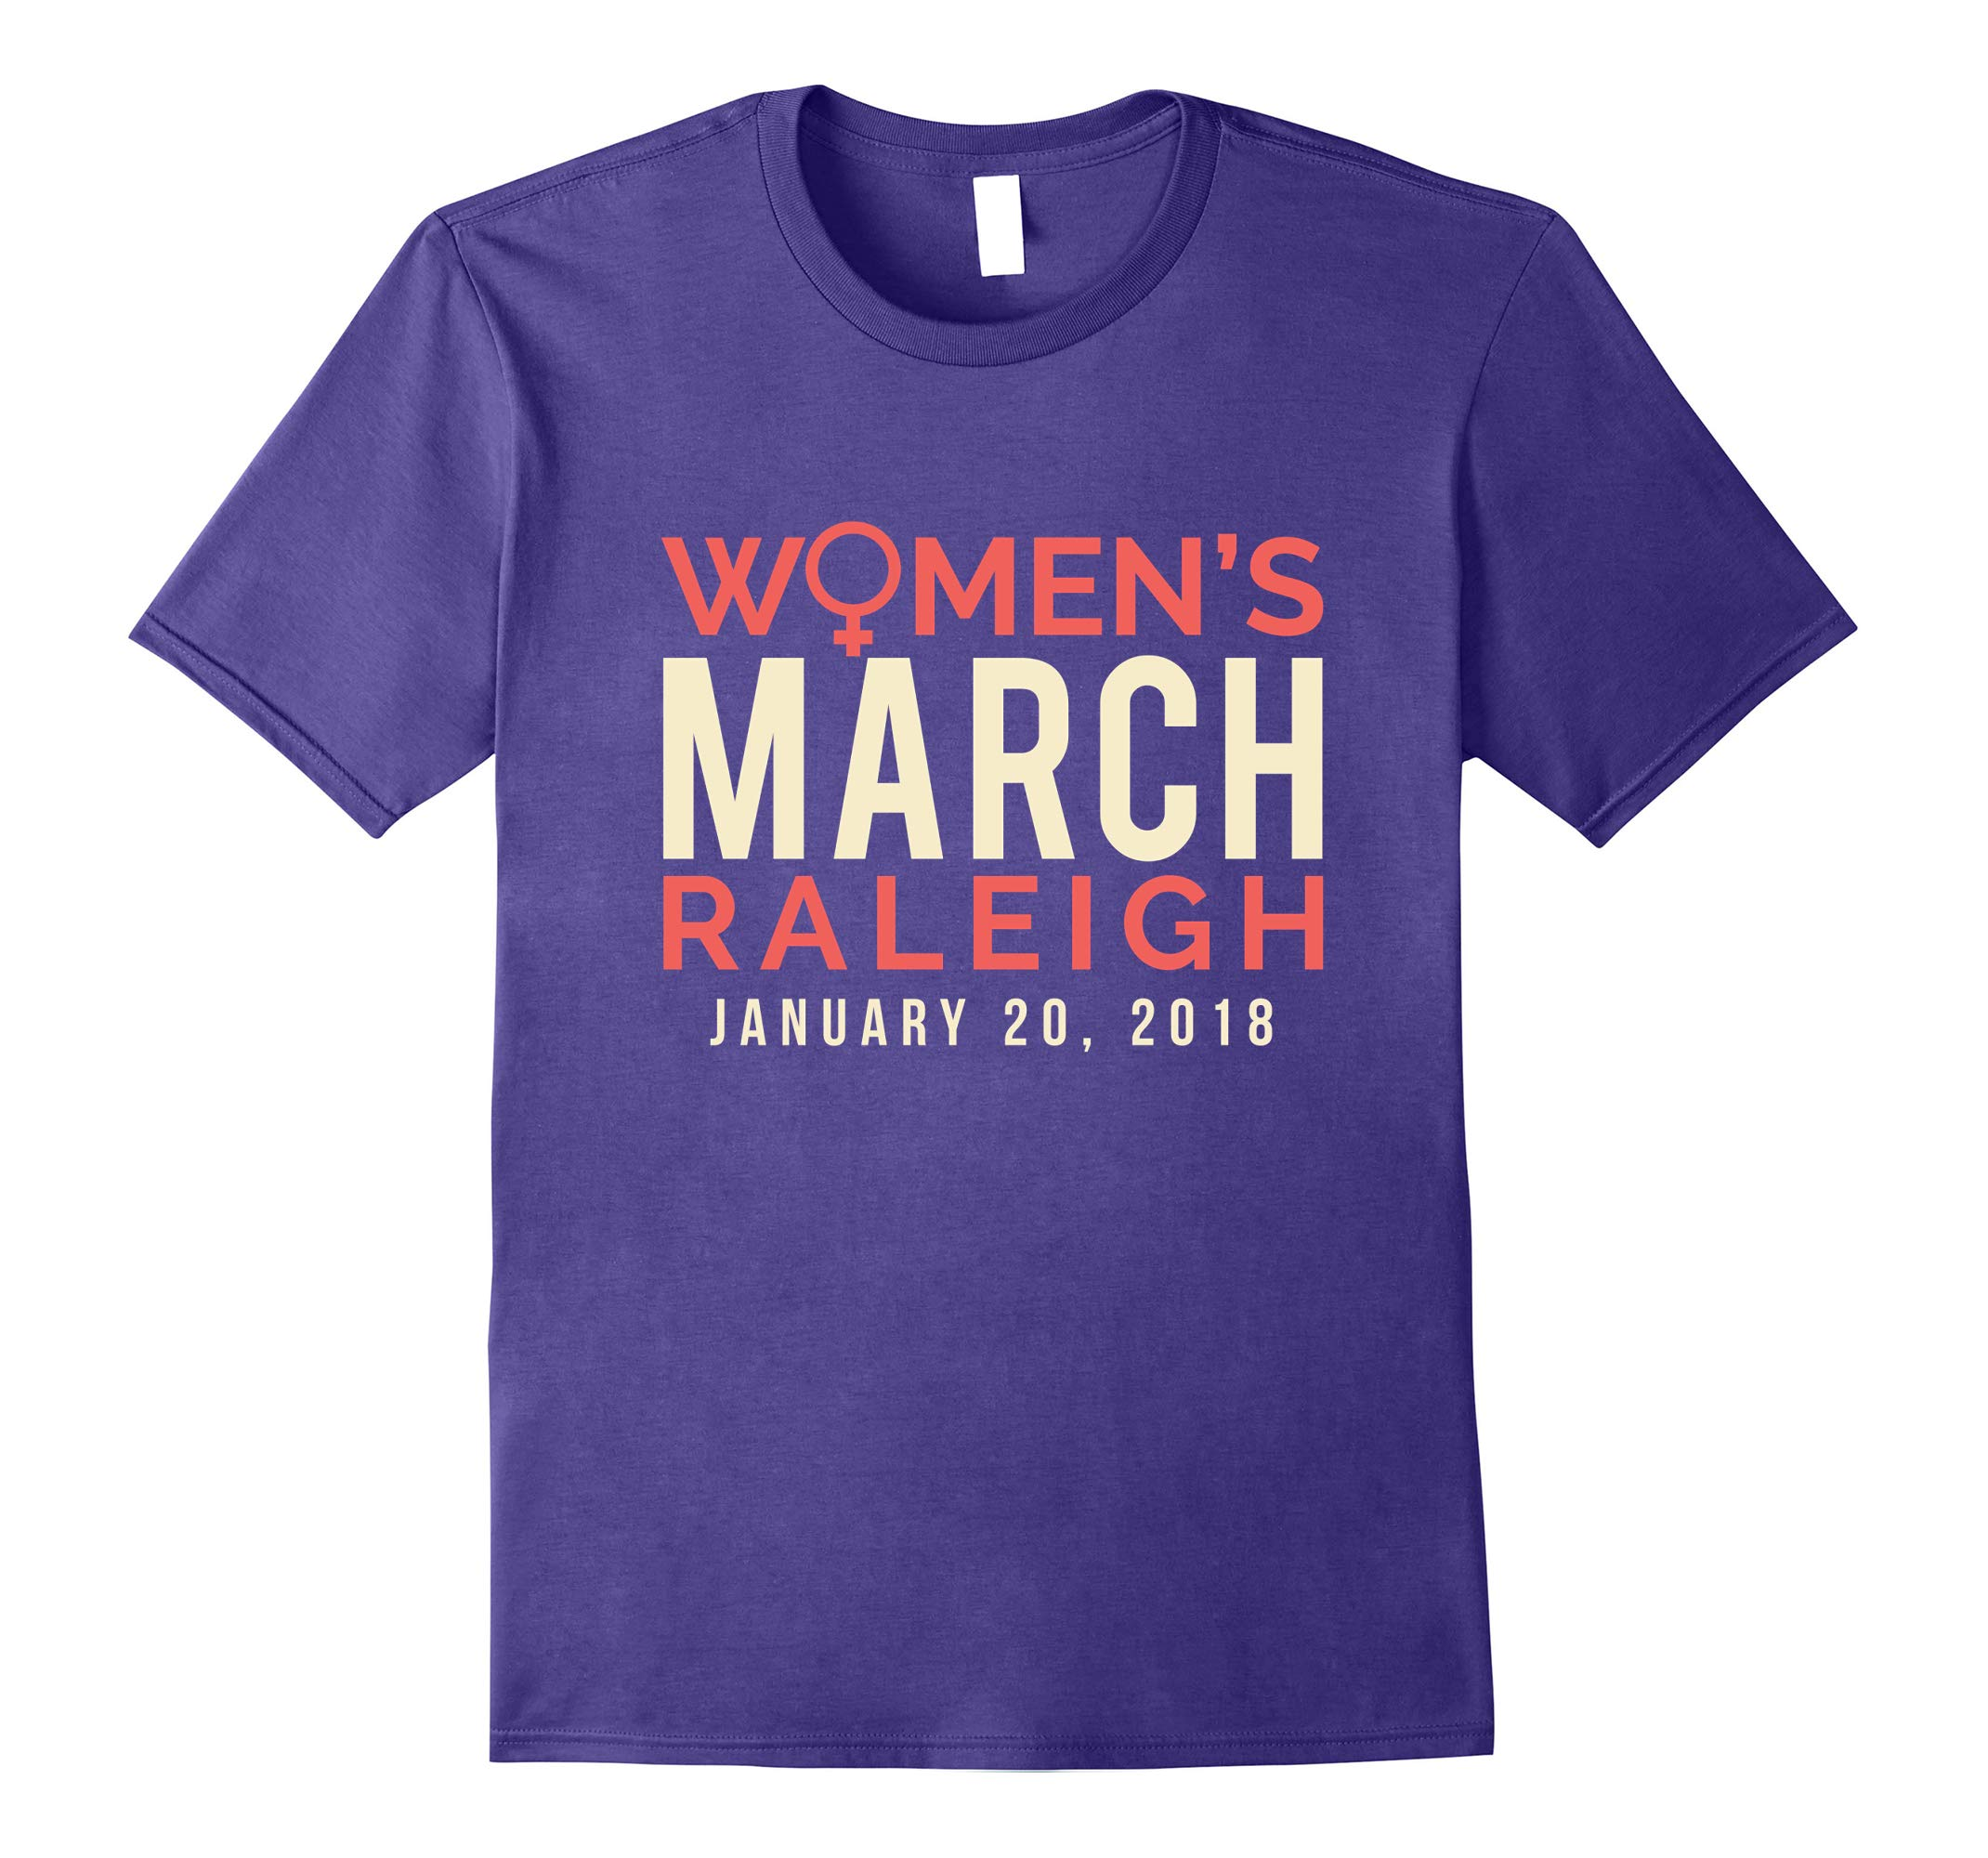 Raleigh NC Women's March January 20 2018 Tee Shirt-RT